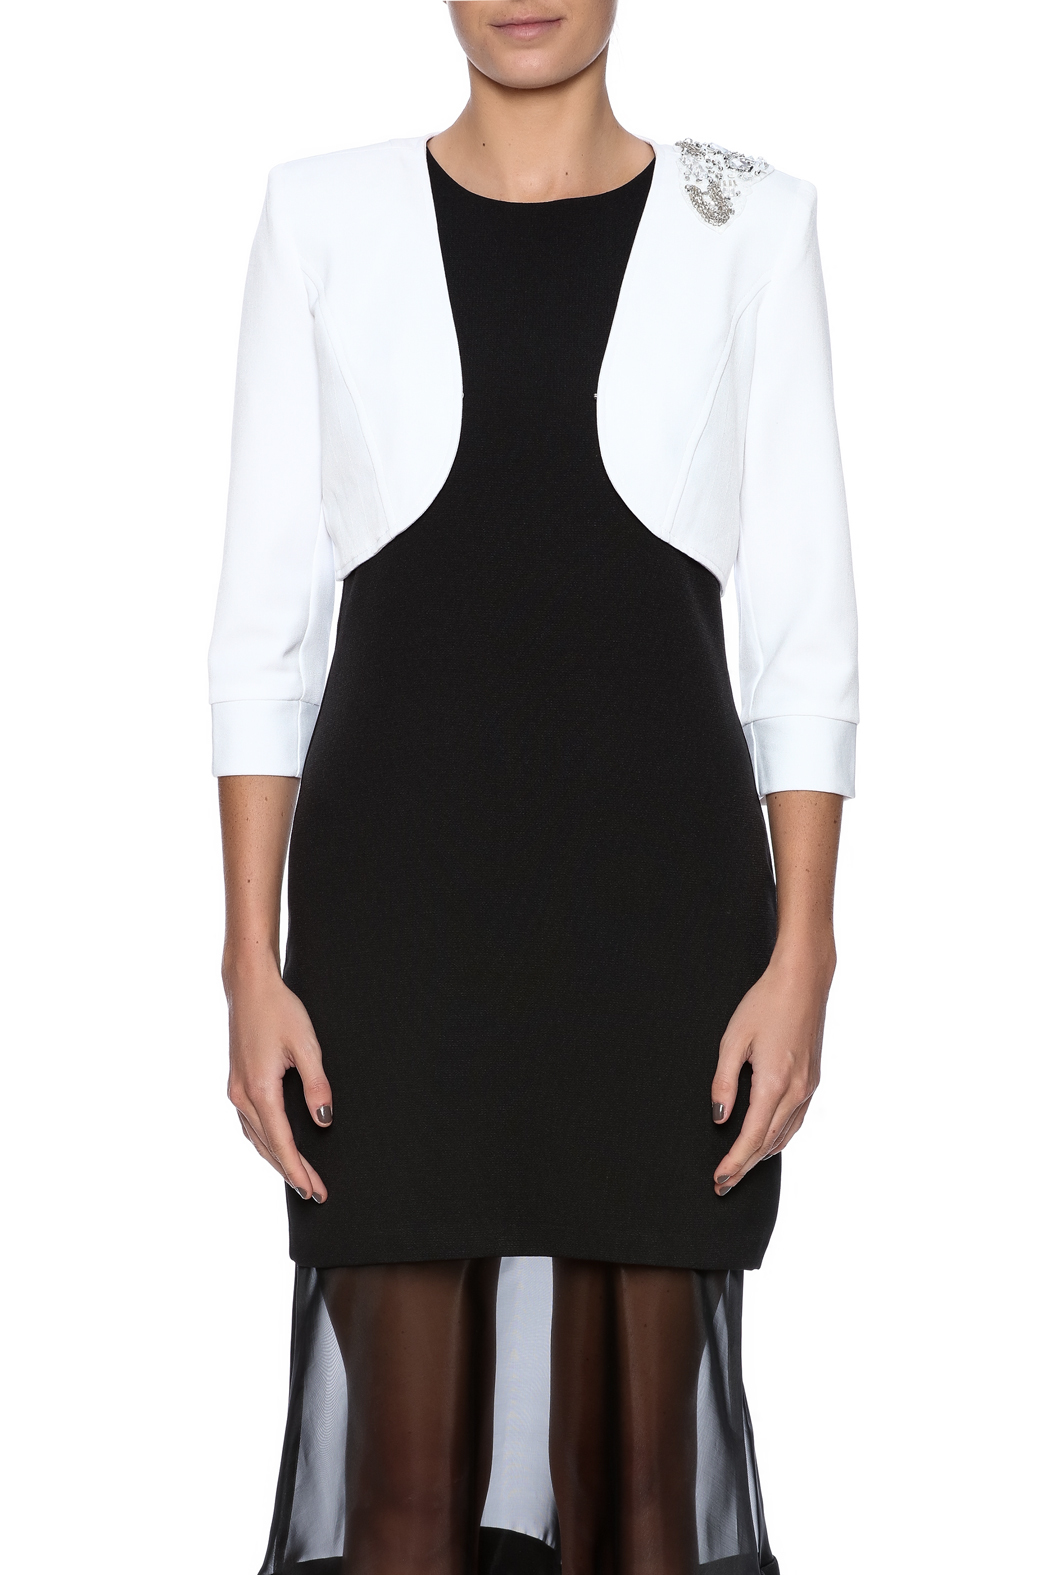 Sans Souci White Jeweled Blazer - Side Cropped Image